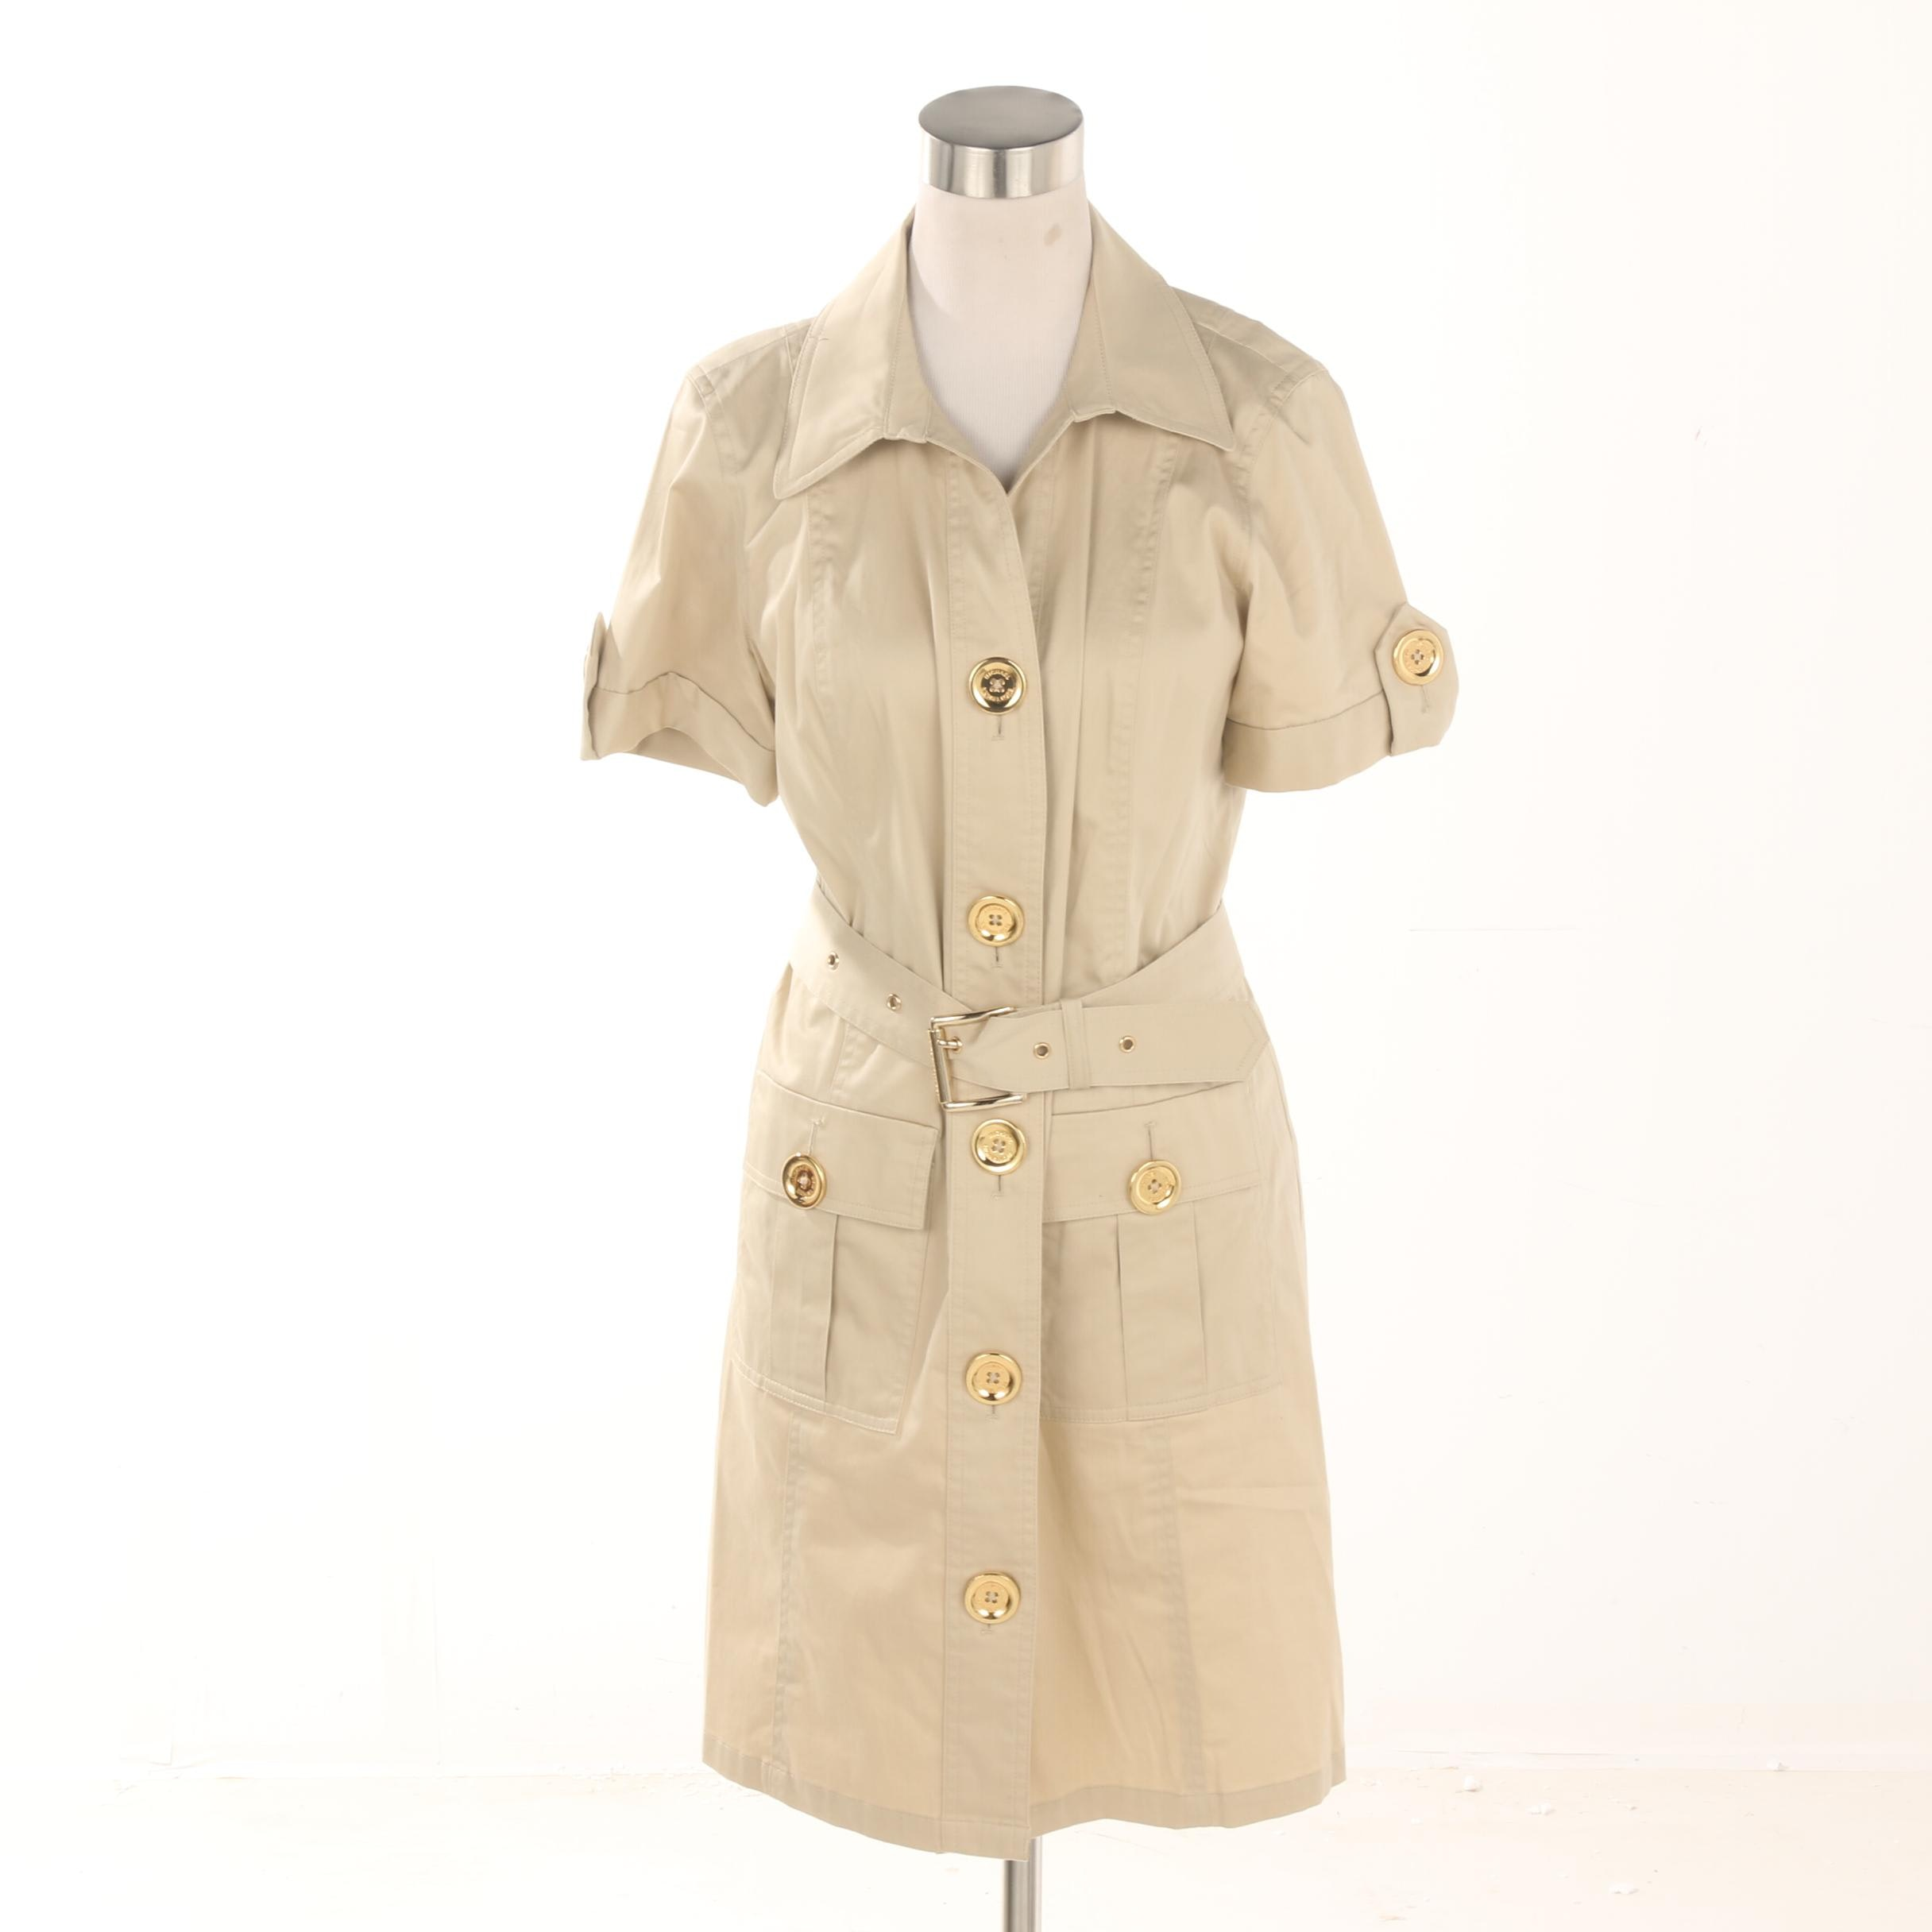 MICHAEL Michael Kors Khaki Cotton Blend Shirt Dress